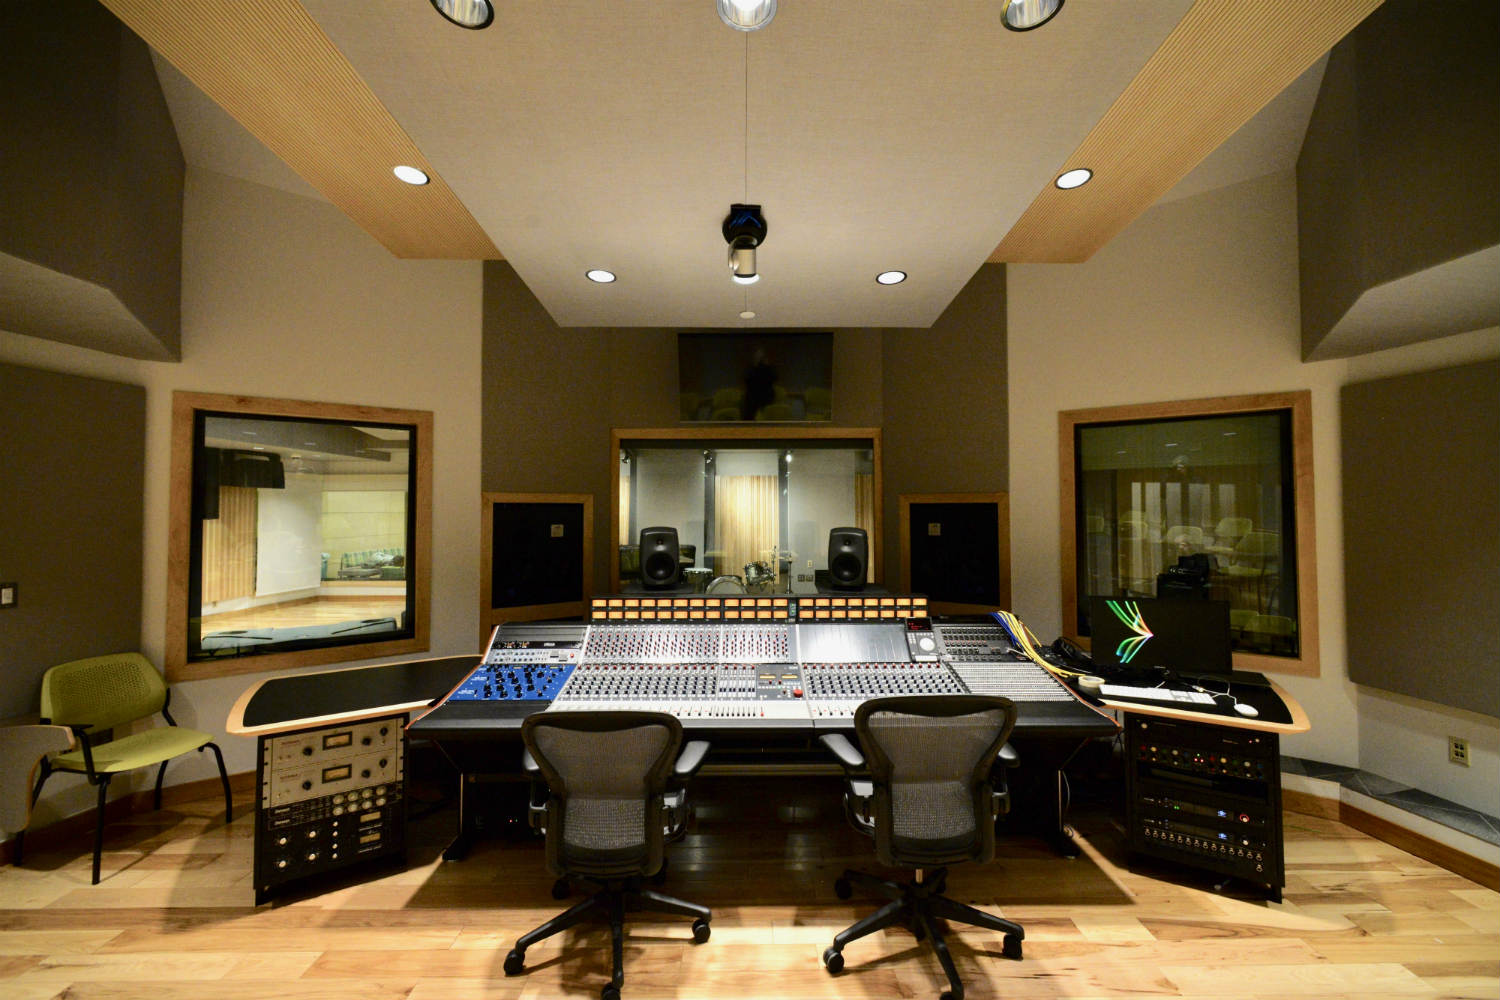 Drexel University in Philadelphia, PA is one of America's 15 largest universities. Their brand-new recording facilities, designed by the WSDG team, expands their music and recording program. Control Room Front view